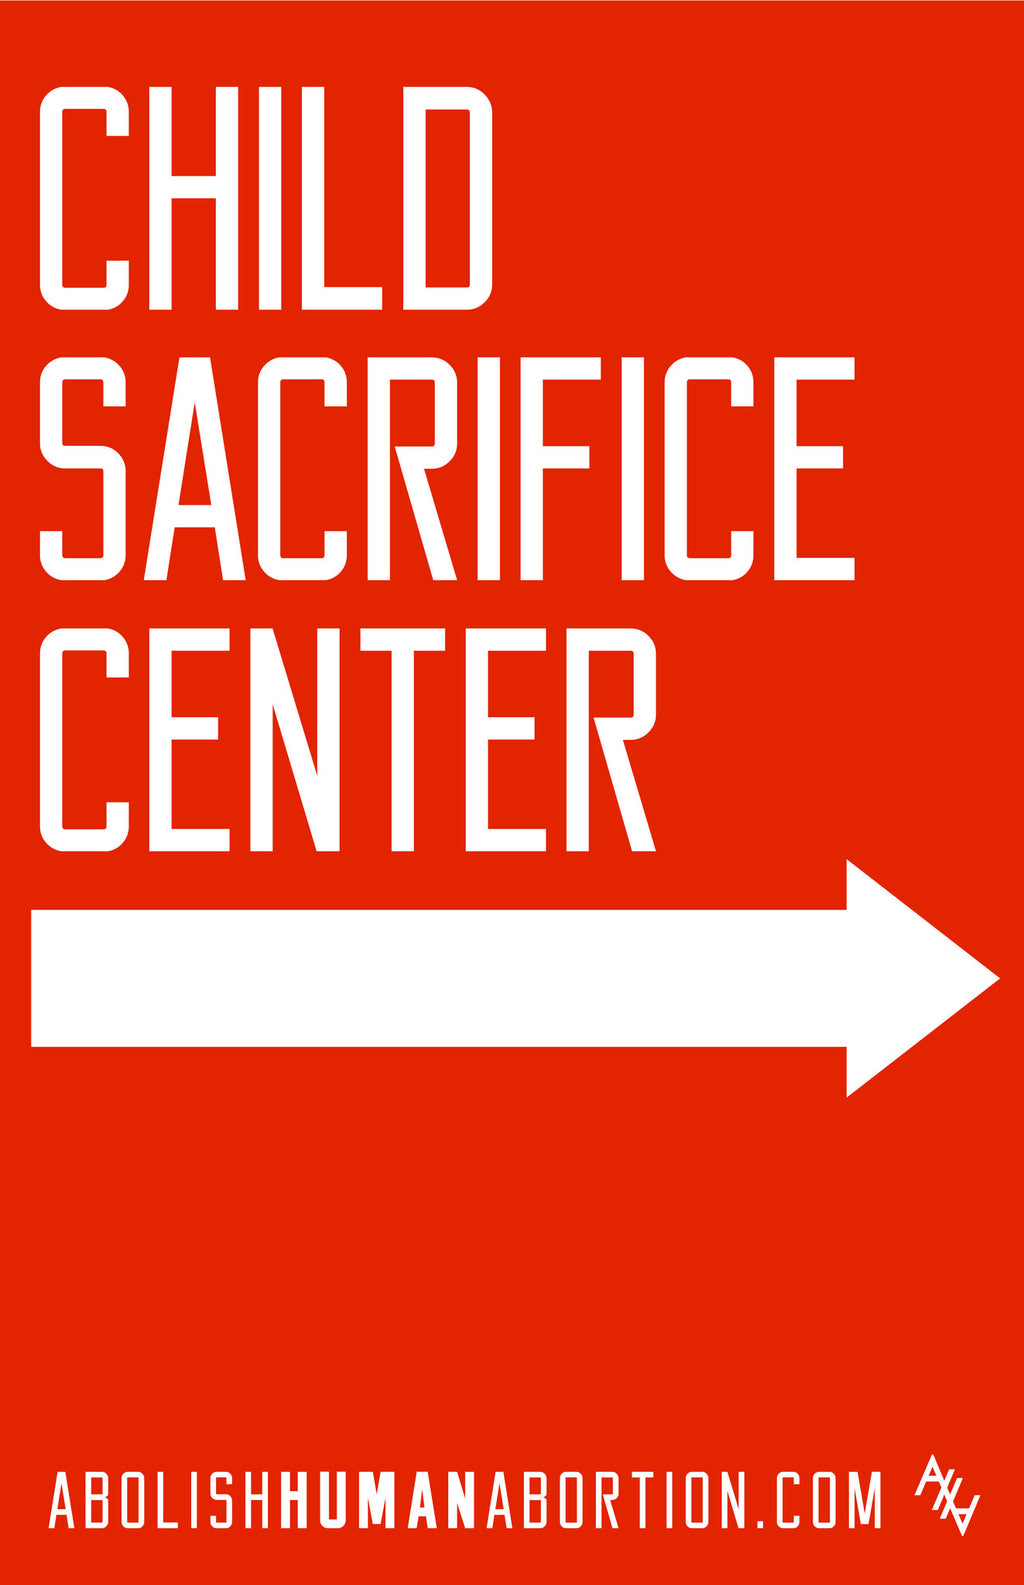 Child Sacrifice Center (Right Pointing Arrow) Sign